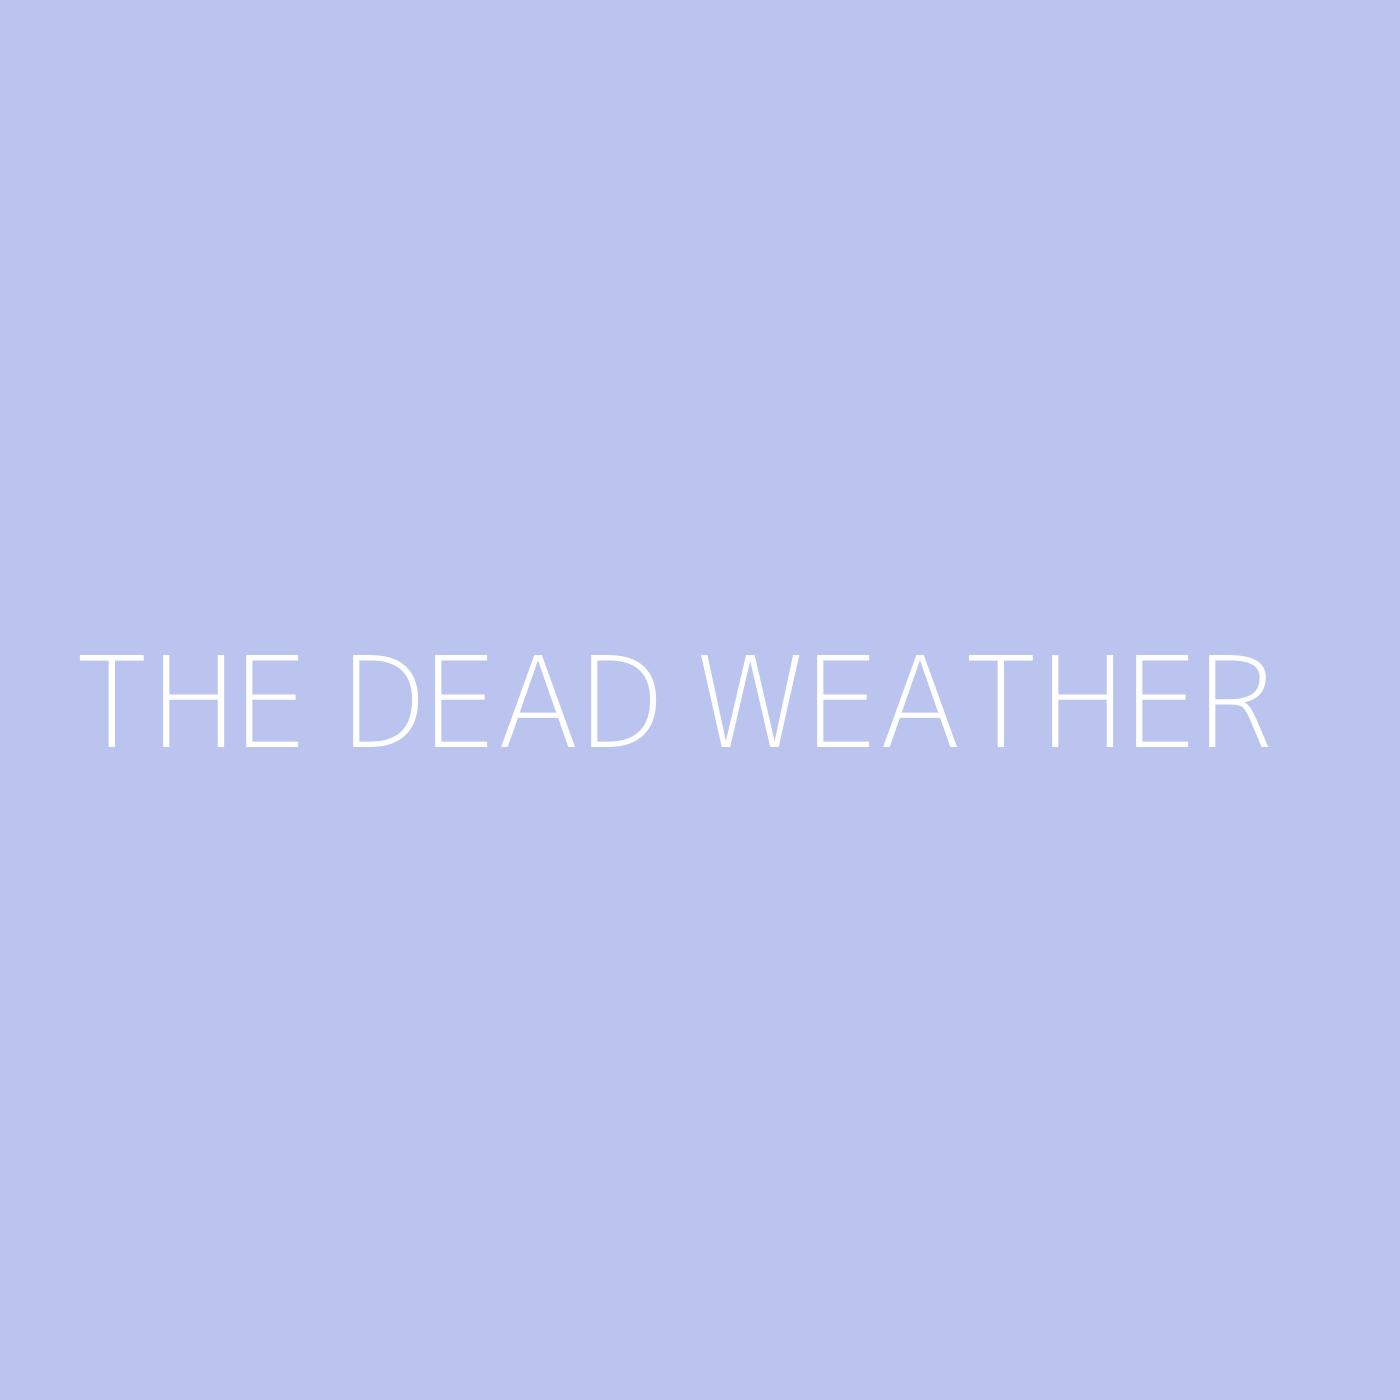 The Dead Weather Playlist Artwork